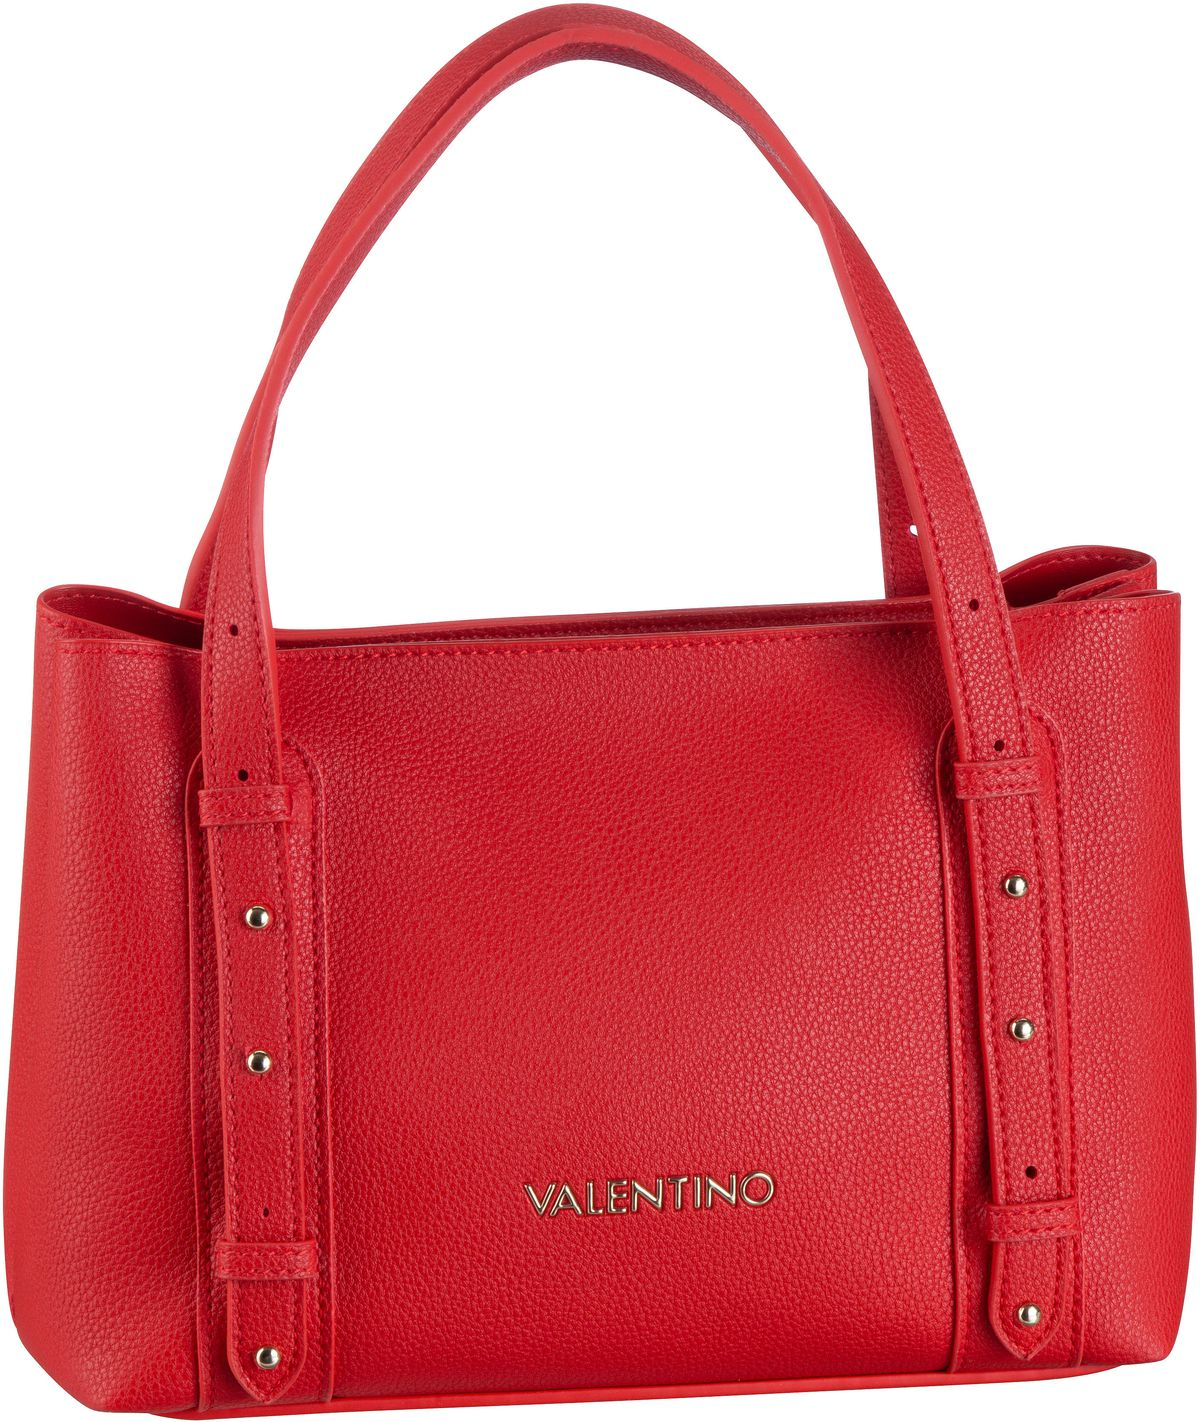 Bags Handtasche Alma Shopping M02 Rosso